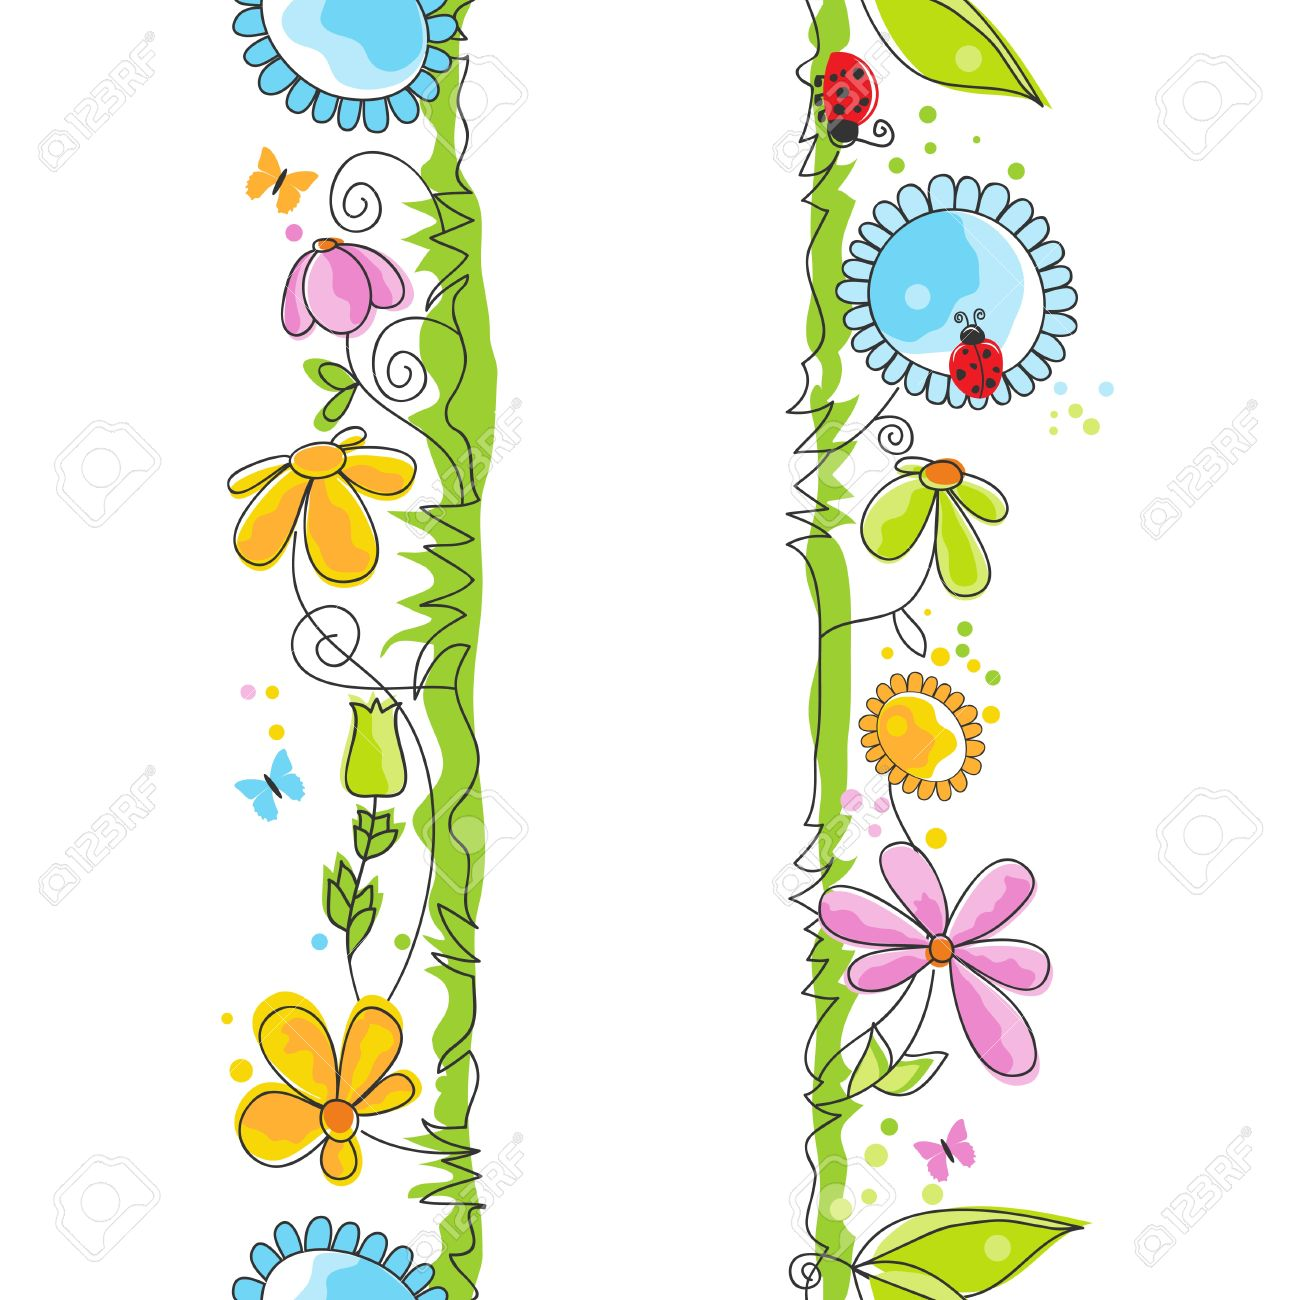 Cute Floral Borders Stock Vector